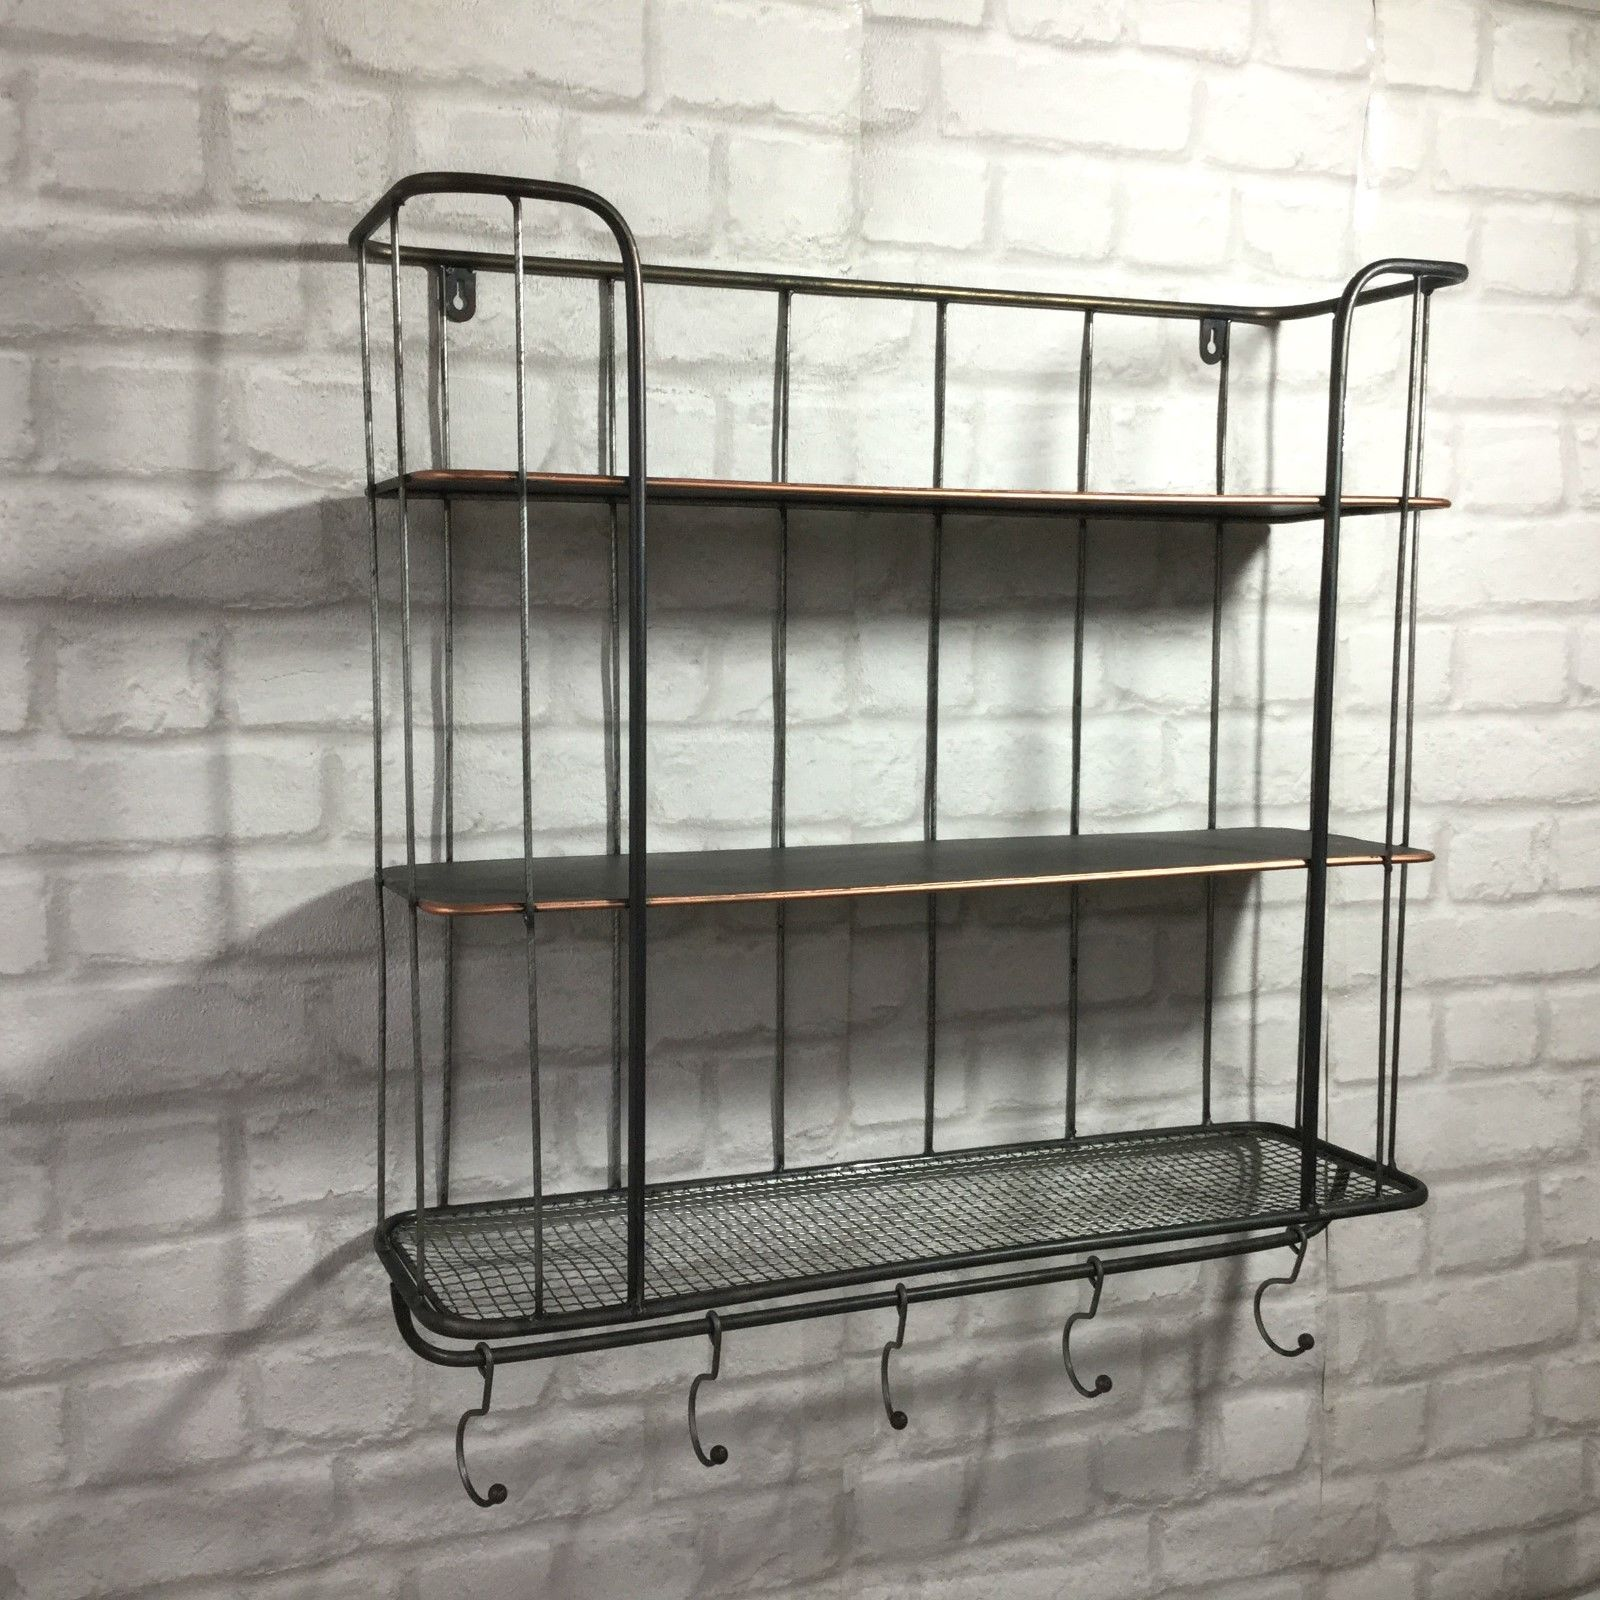 Vintage Industrial Style Metal Wall Shelf Unit Rack Coat